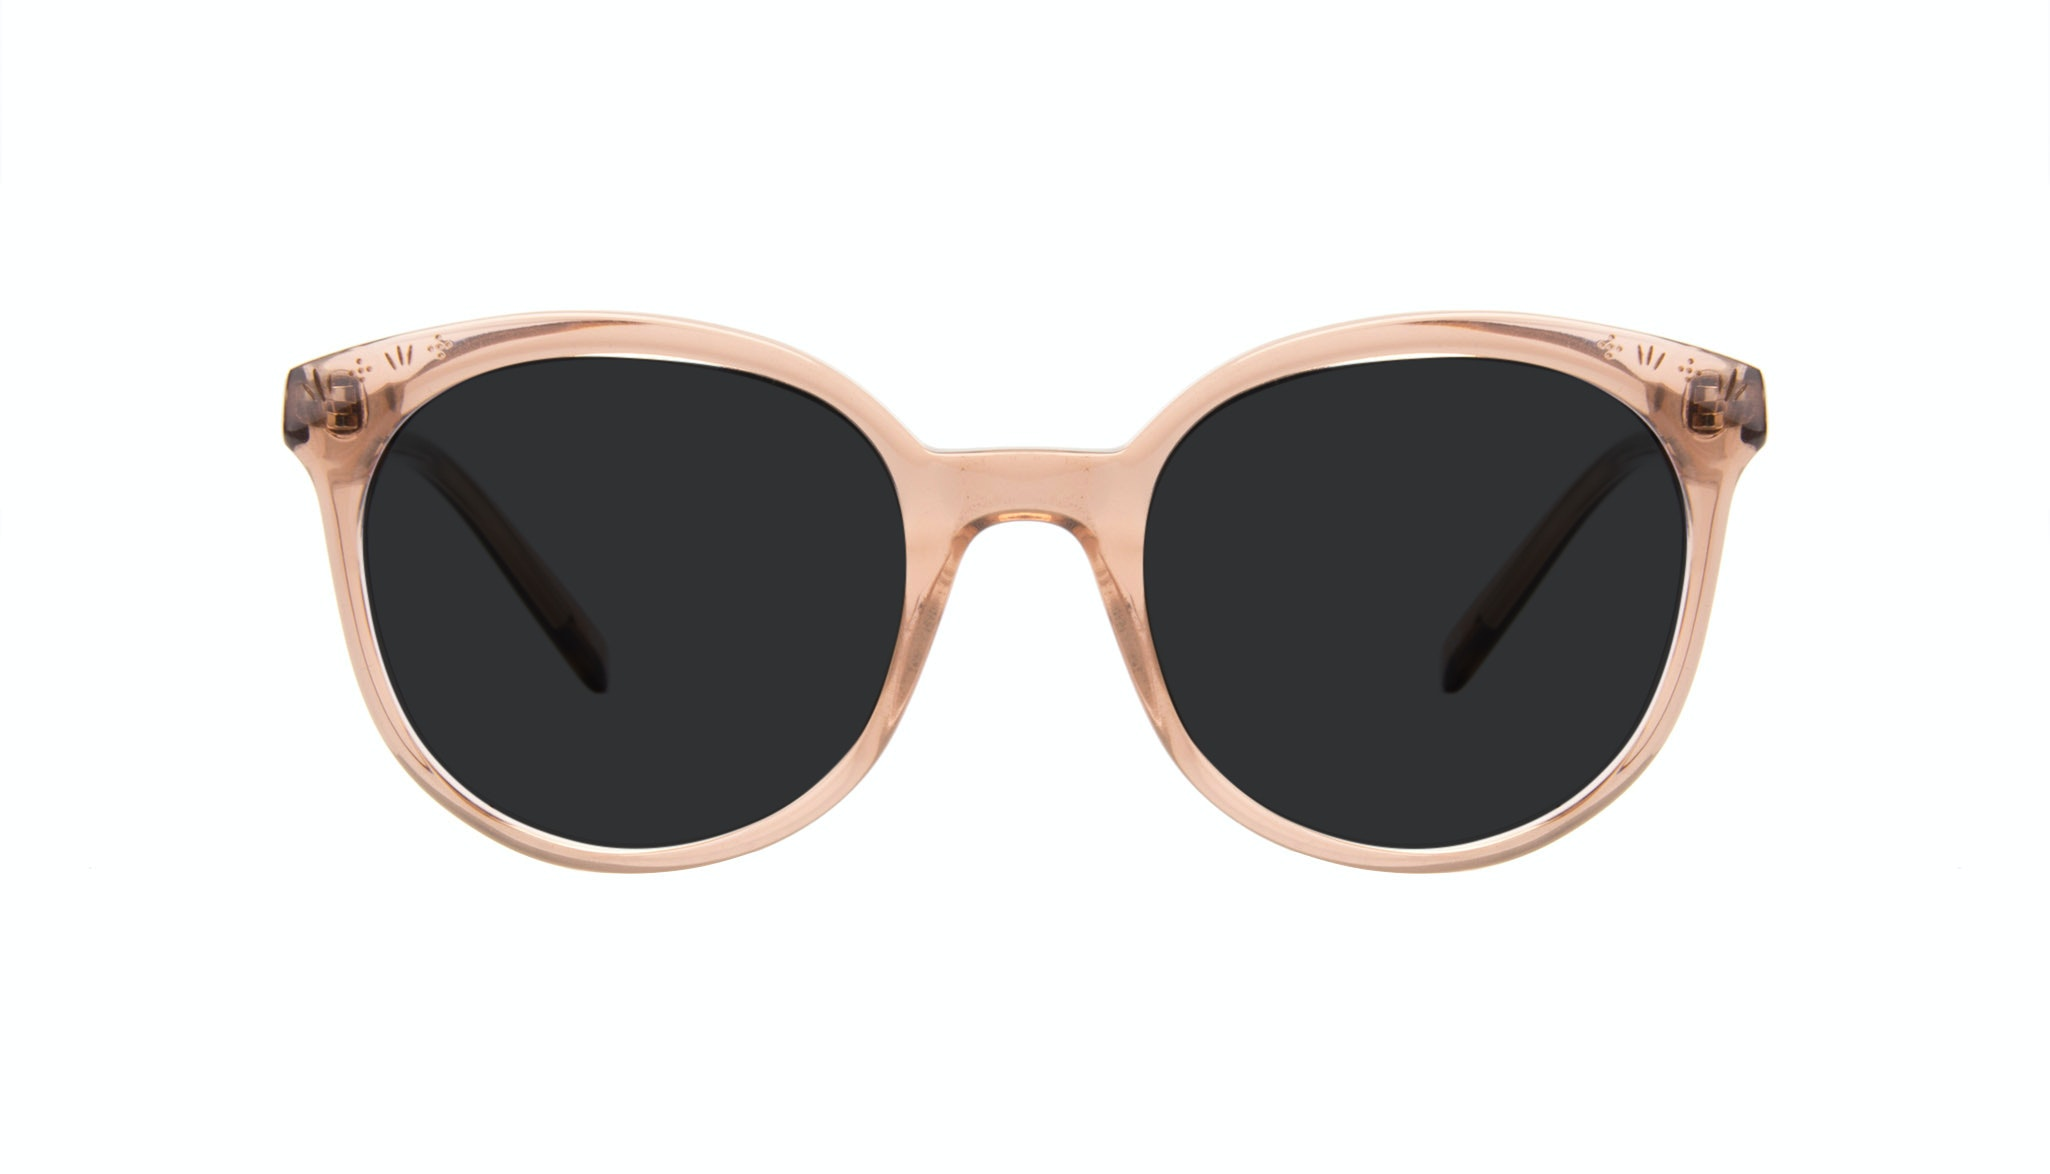 Affordable Fashion Glasses Round Sunglasses Women Must Rose Front